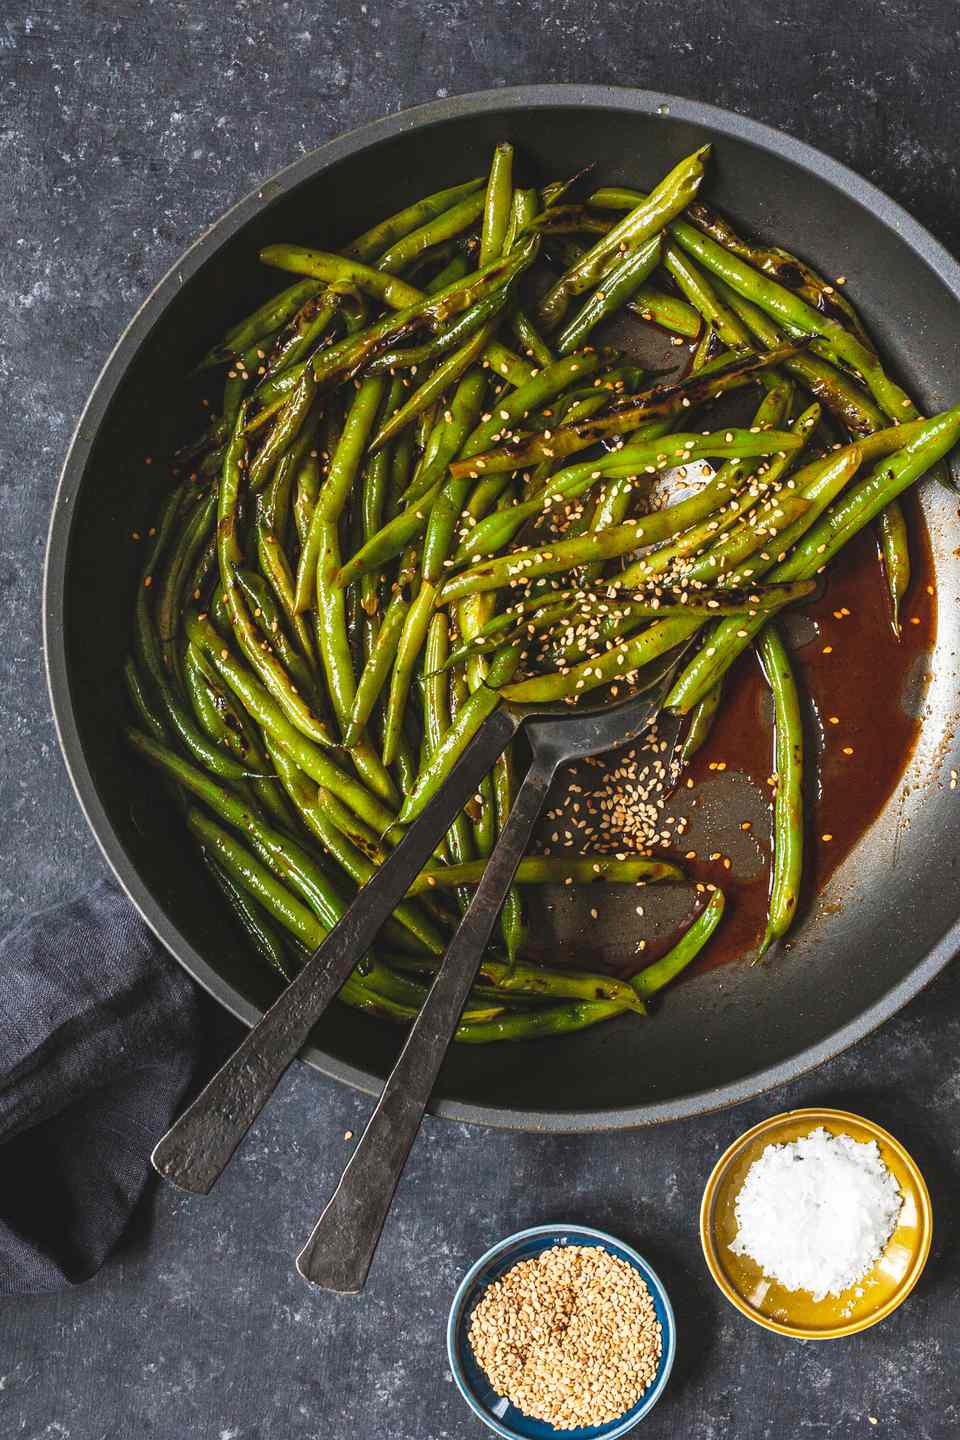 Green Beans with Gochujang cooked in a skillet.